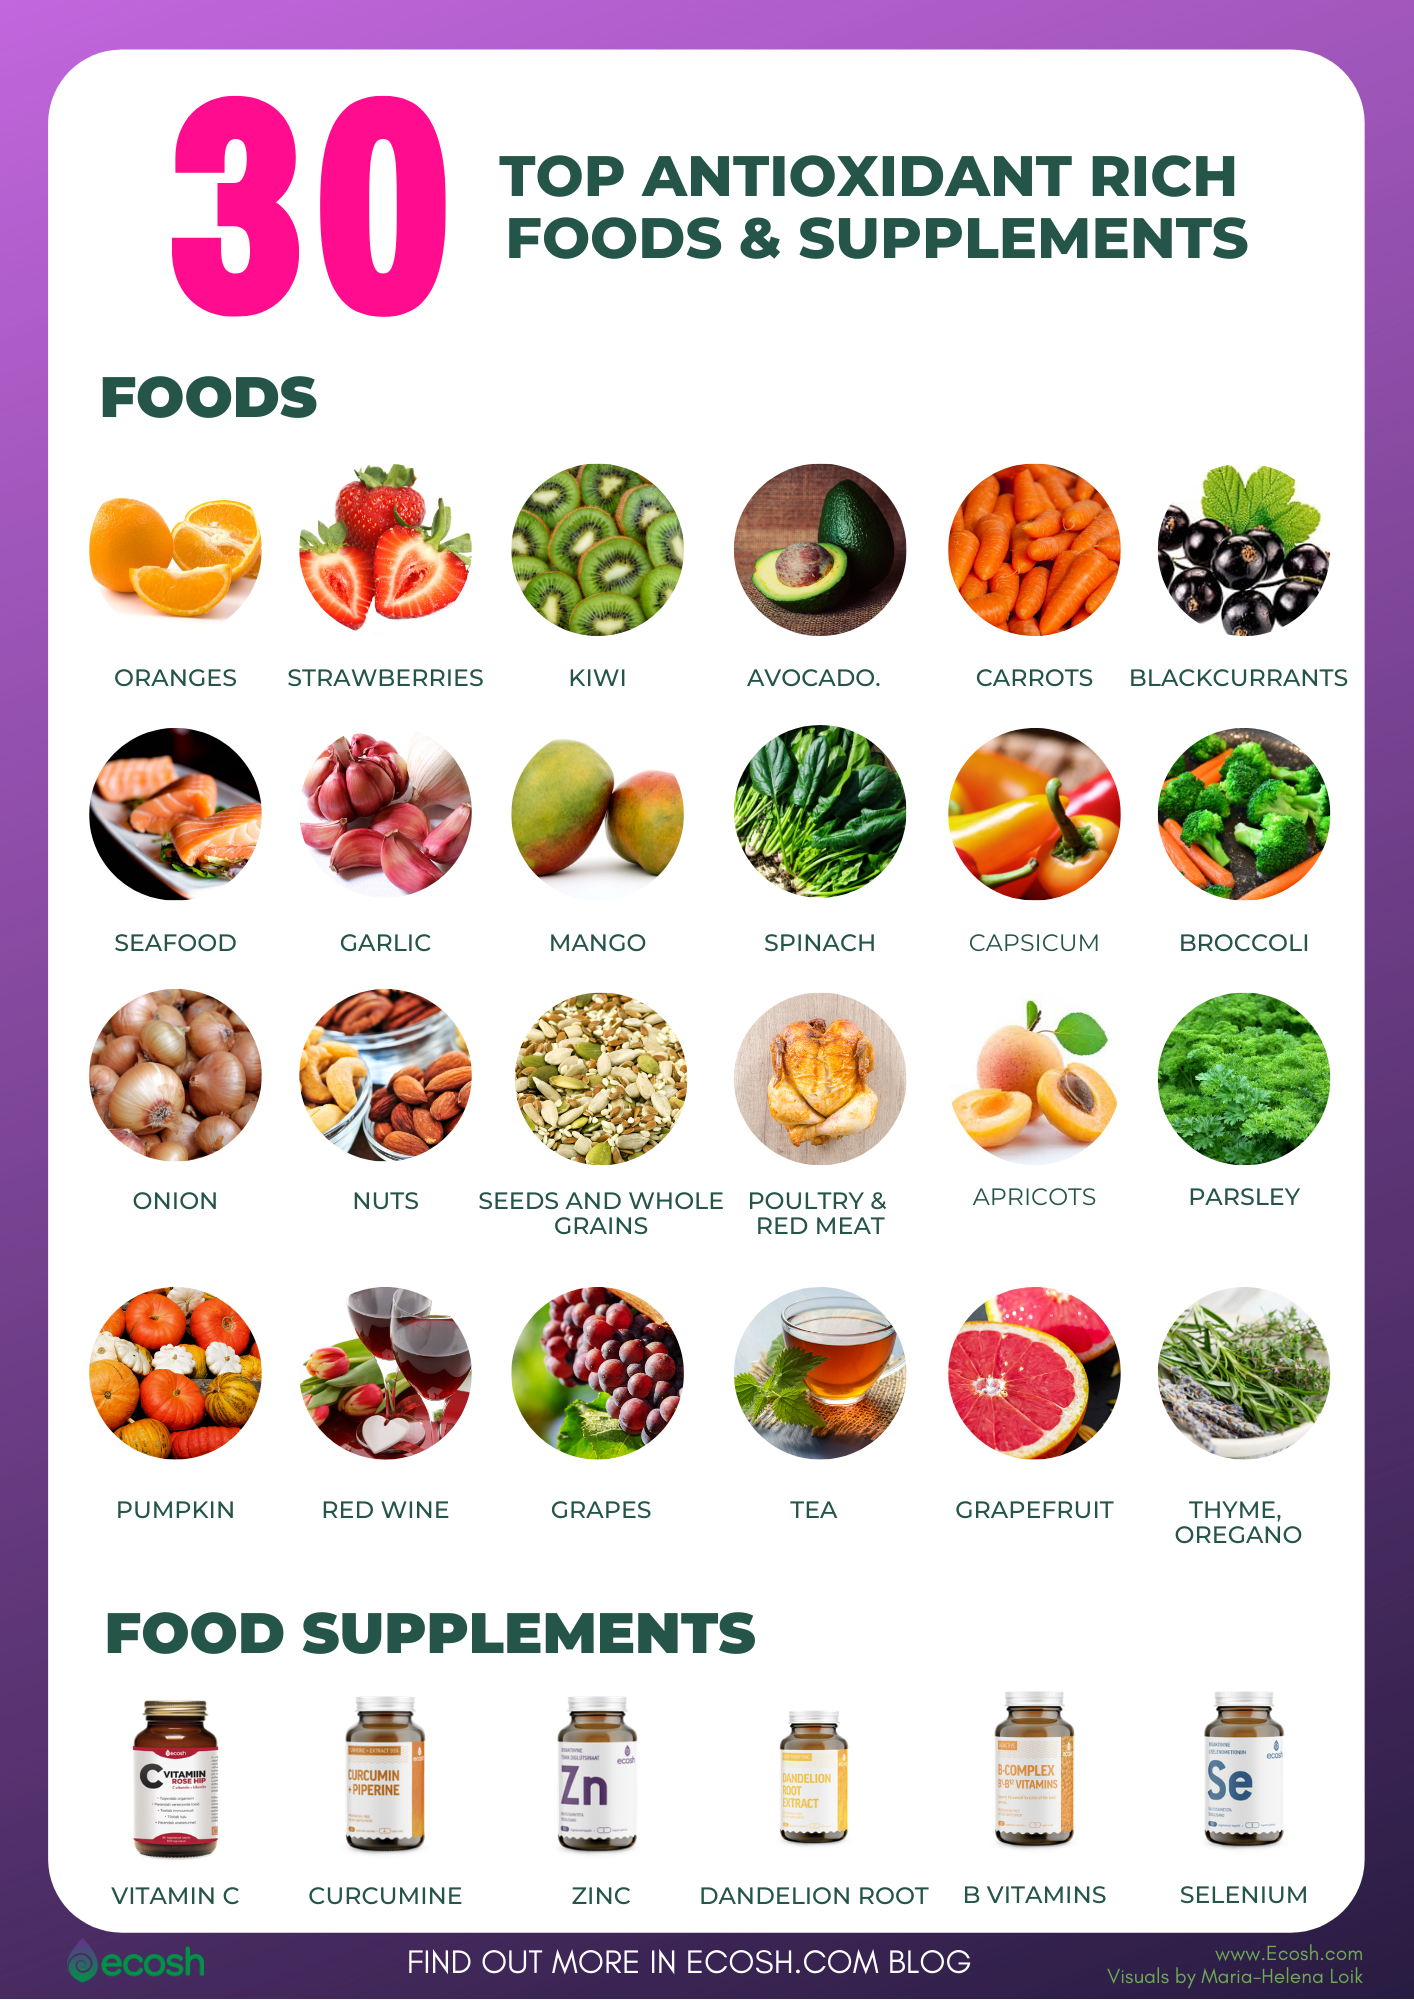 Top_antioxidant_rich_foods_and_antioxidant_rich_food_supplements